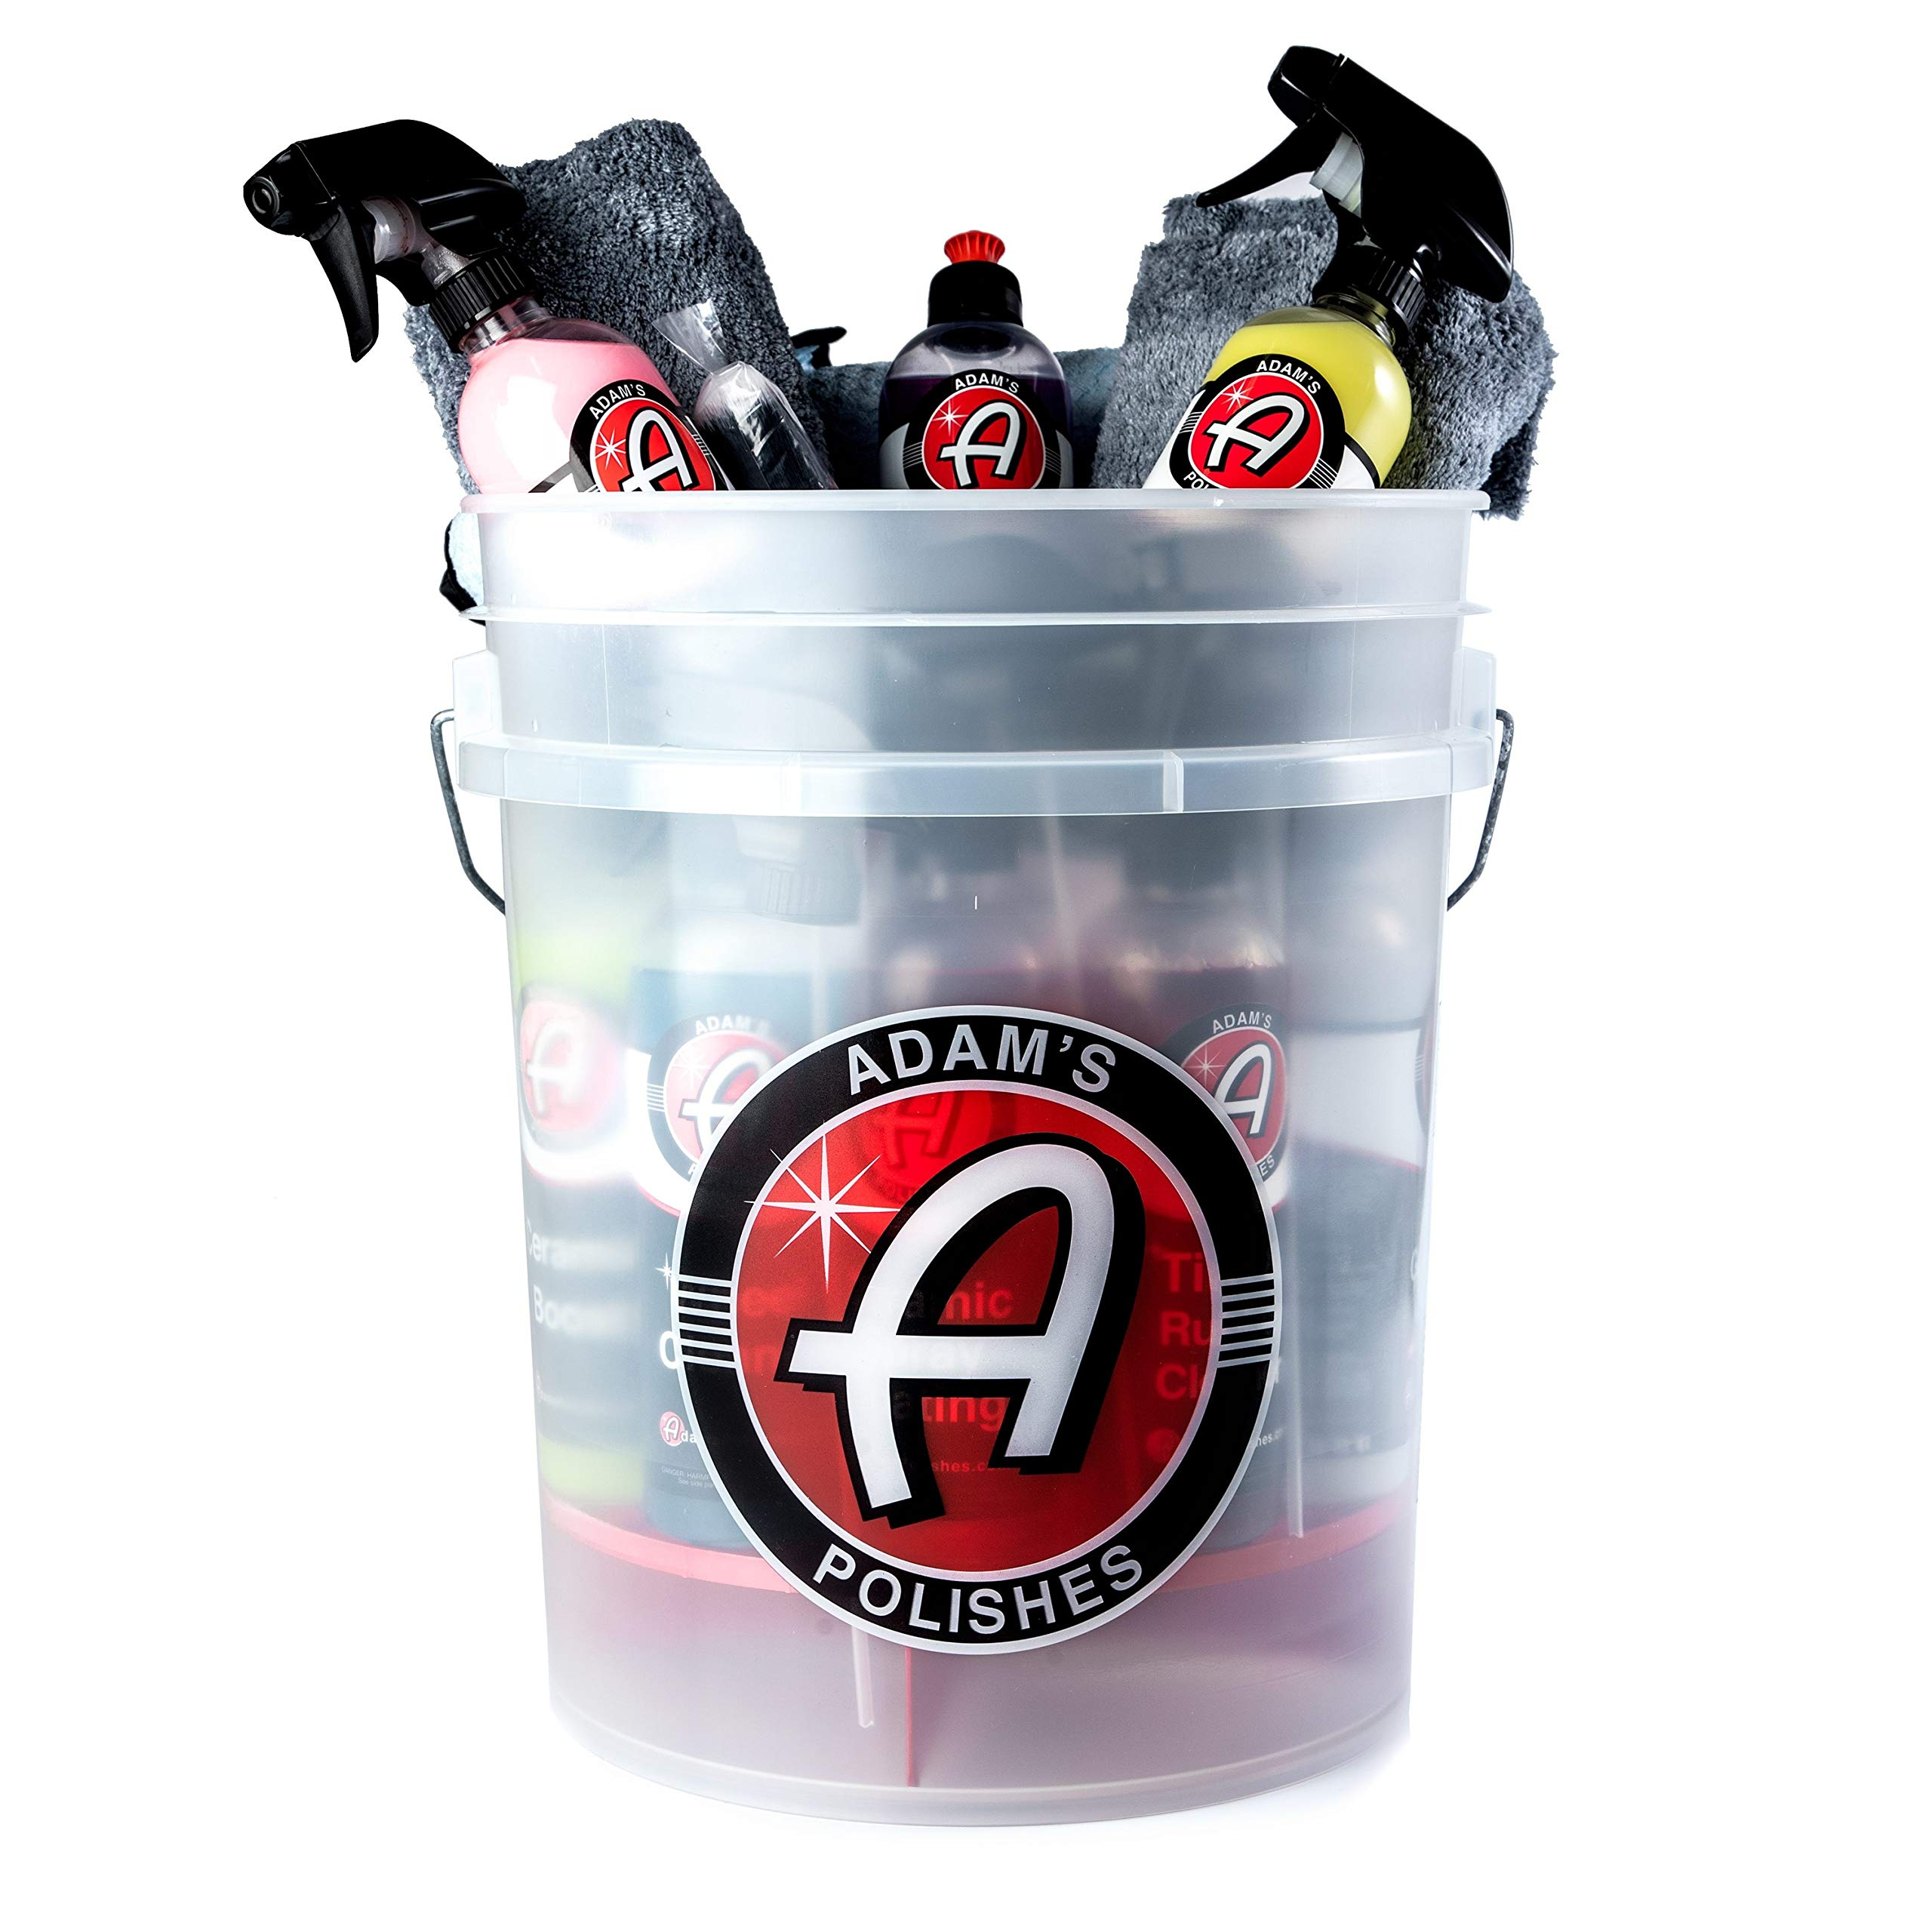 Adam's Mystery Car Wash Bucket - Premium Car Care Chemicals & Products with a Minimum $140 Value